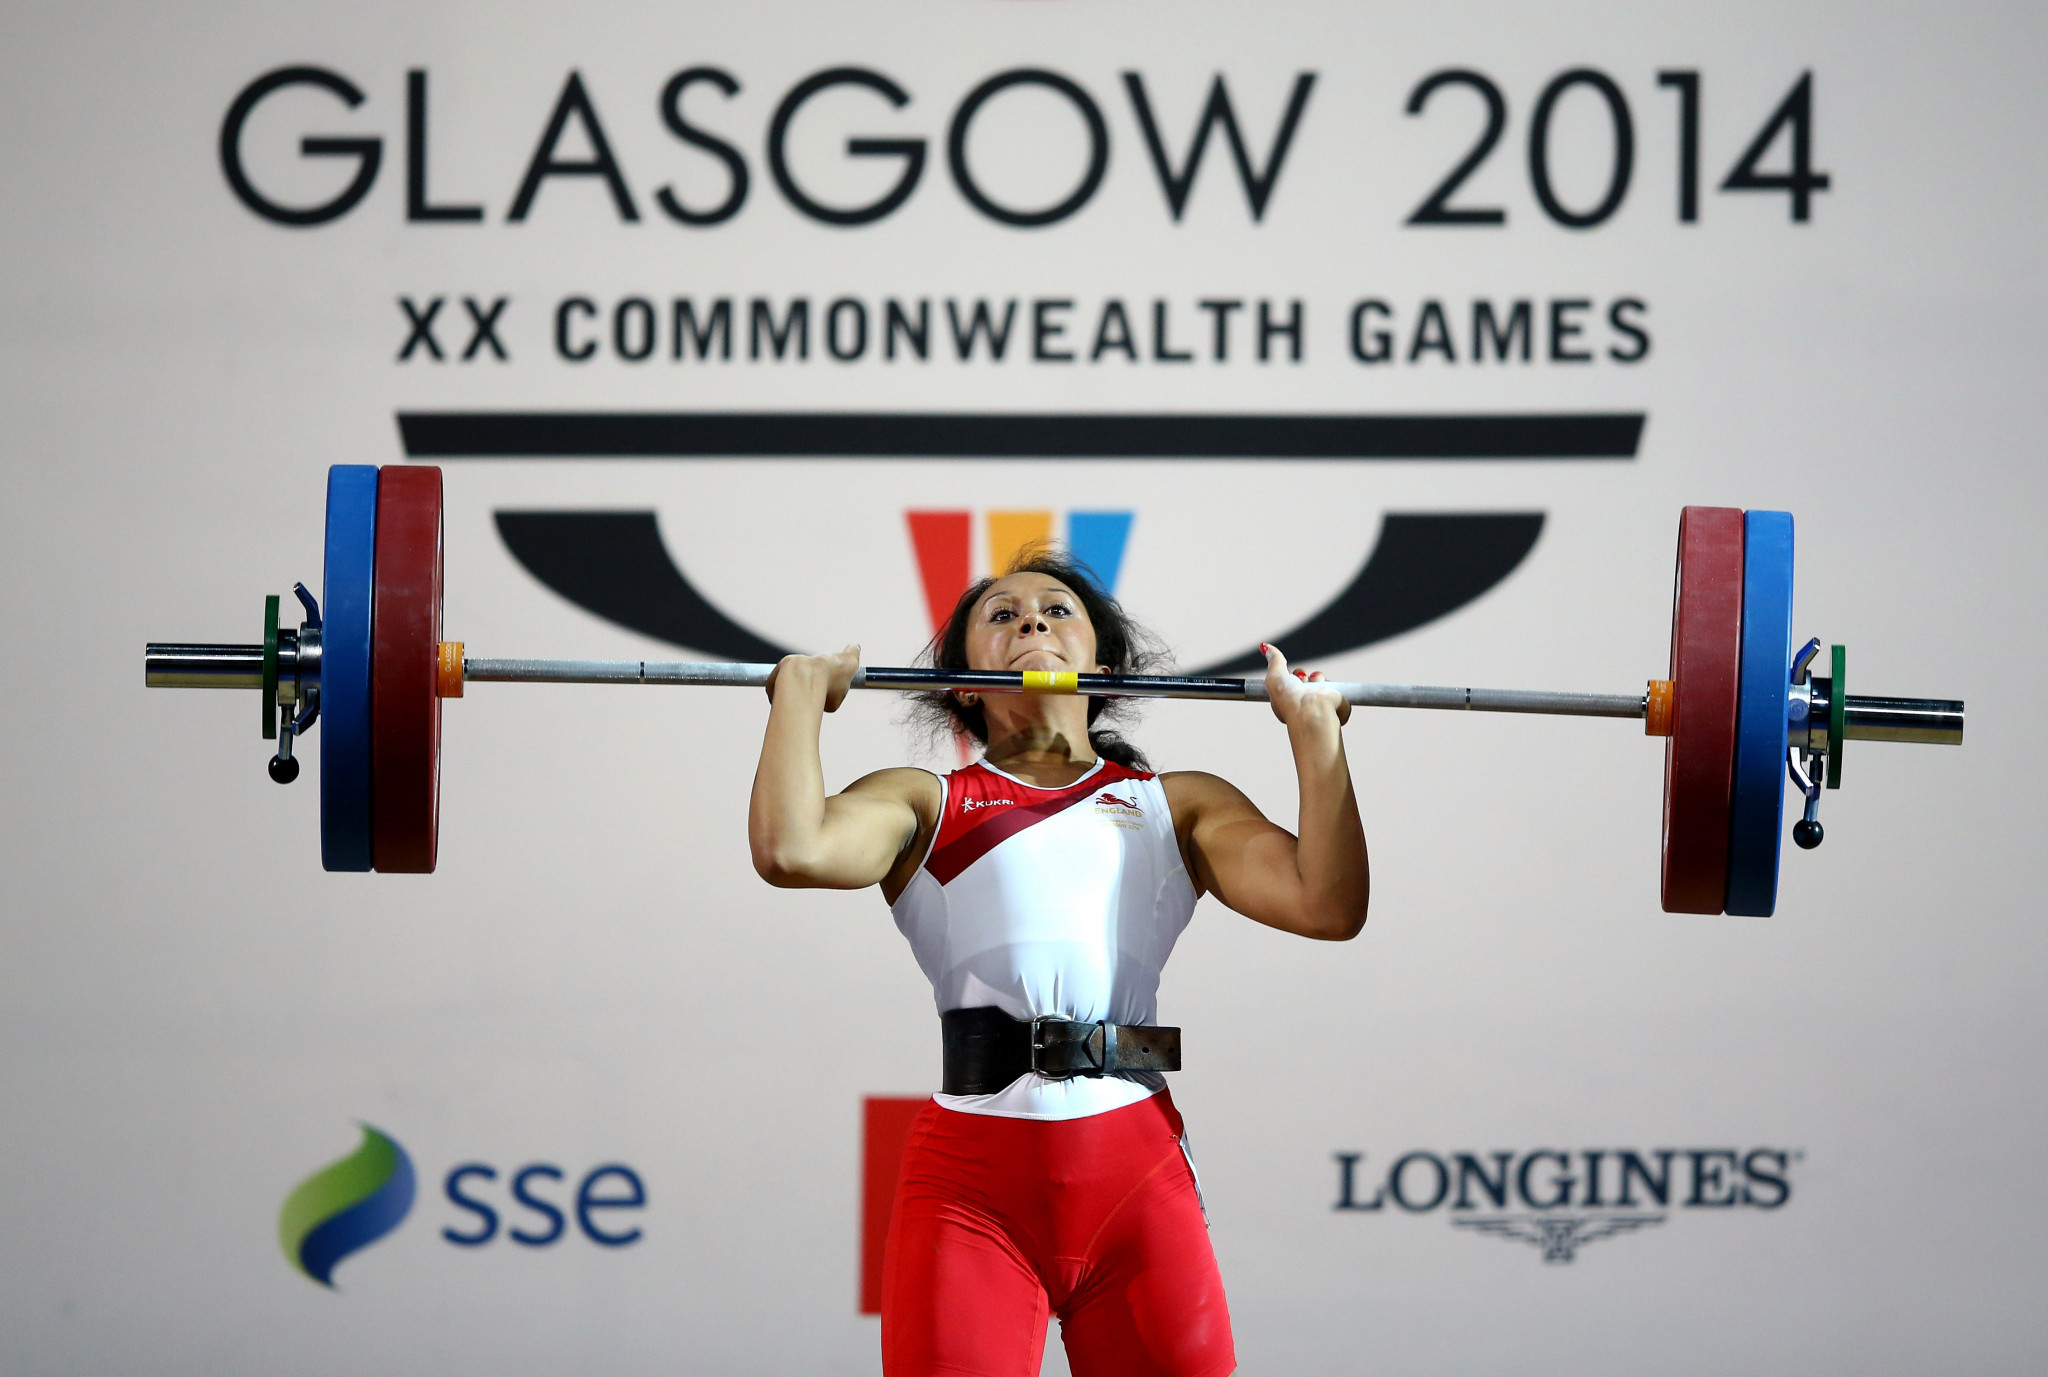 Zoe Smith won gold at the 2014 Commonwealth Games in Glasgow ©Getty Images